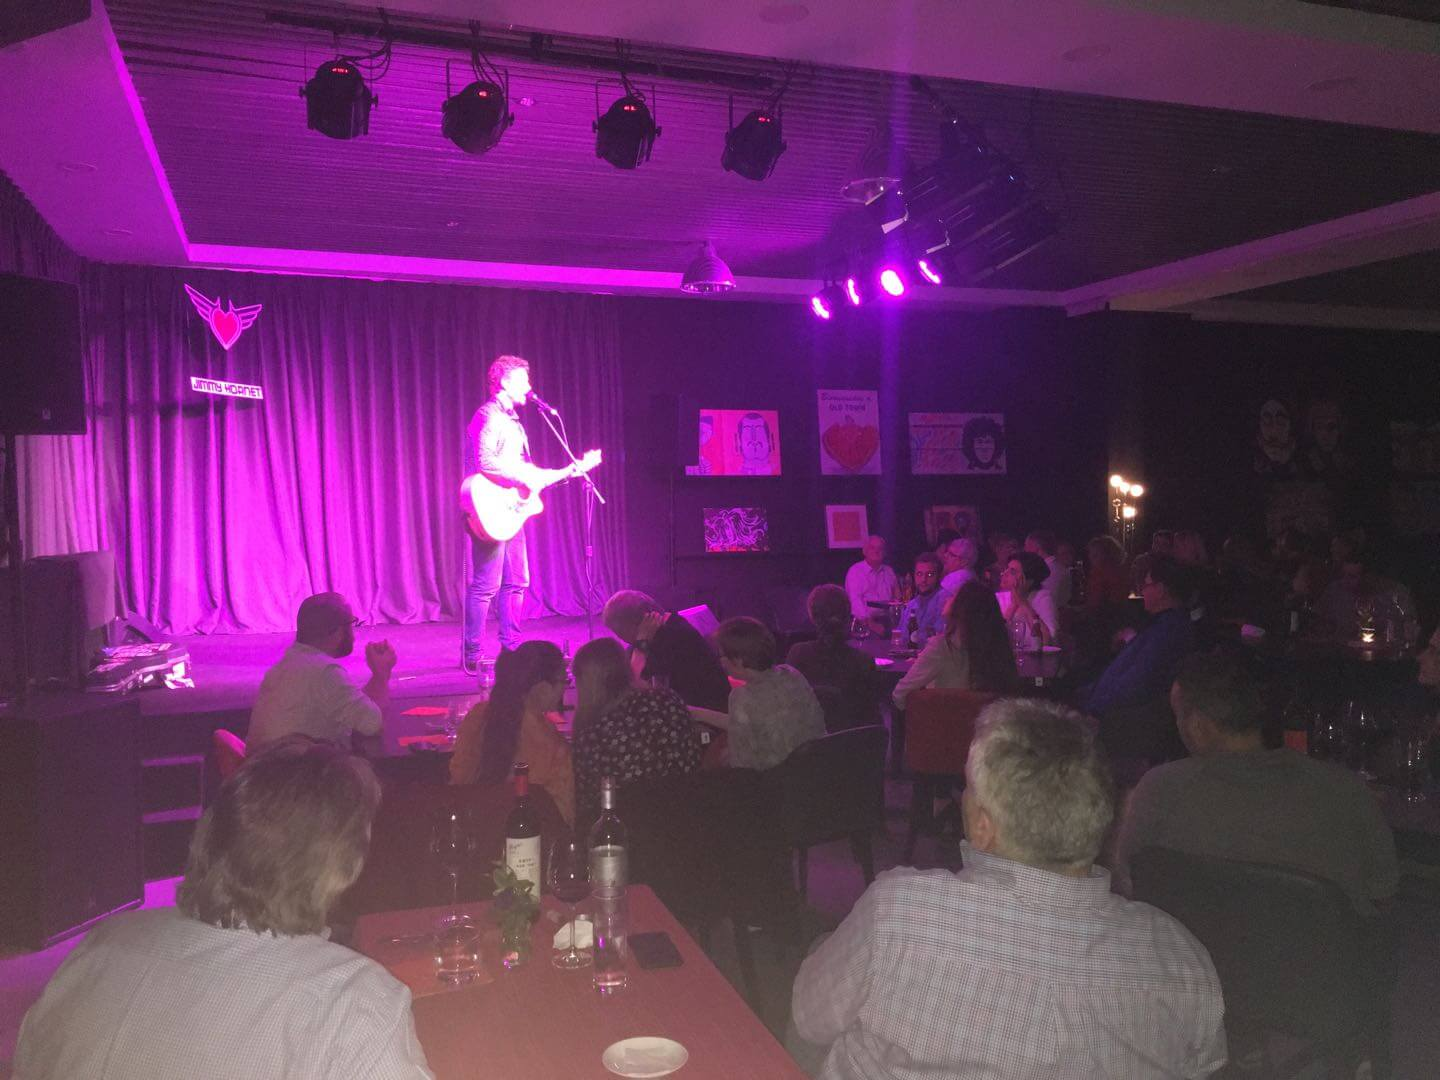 Hugh McGinlay live on stage at Jimmy Hornet